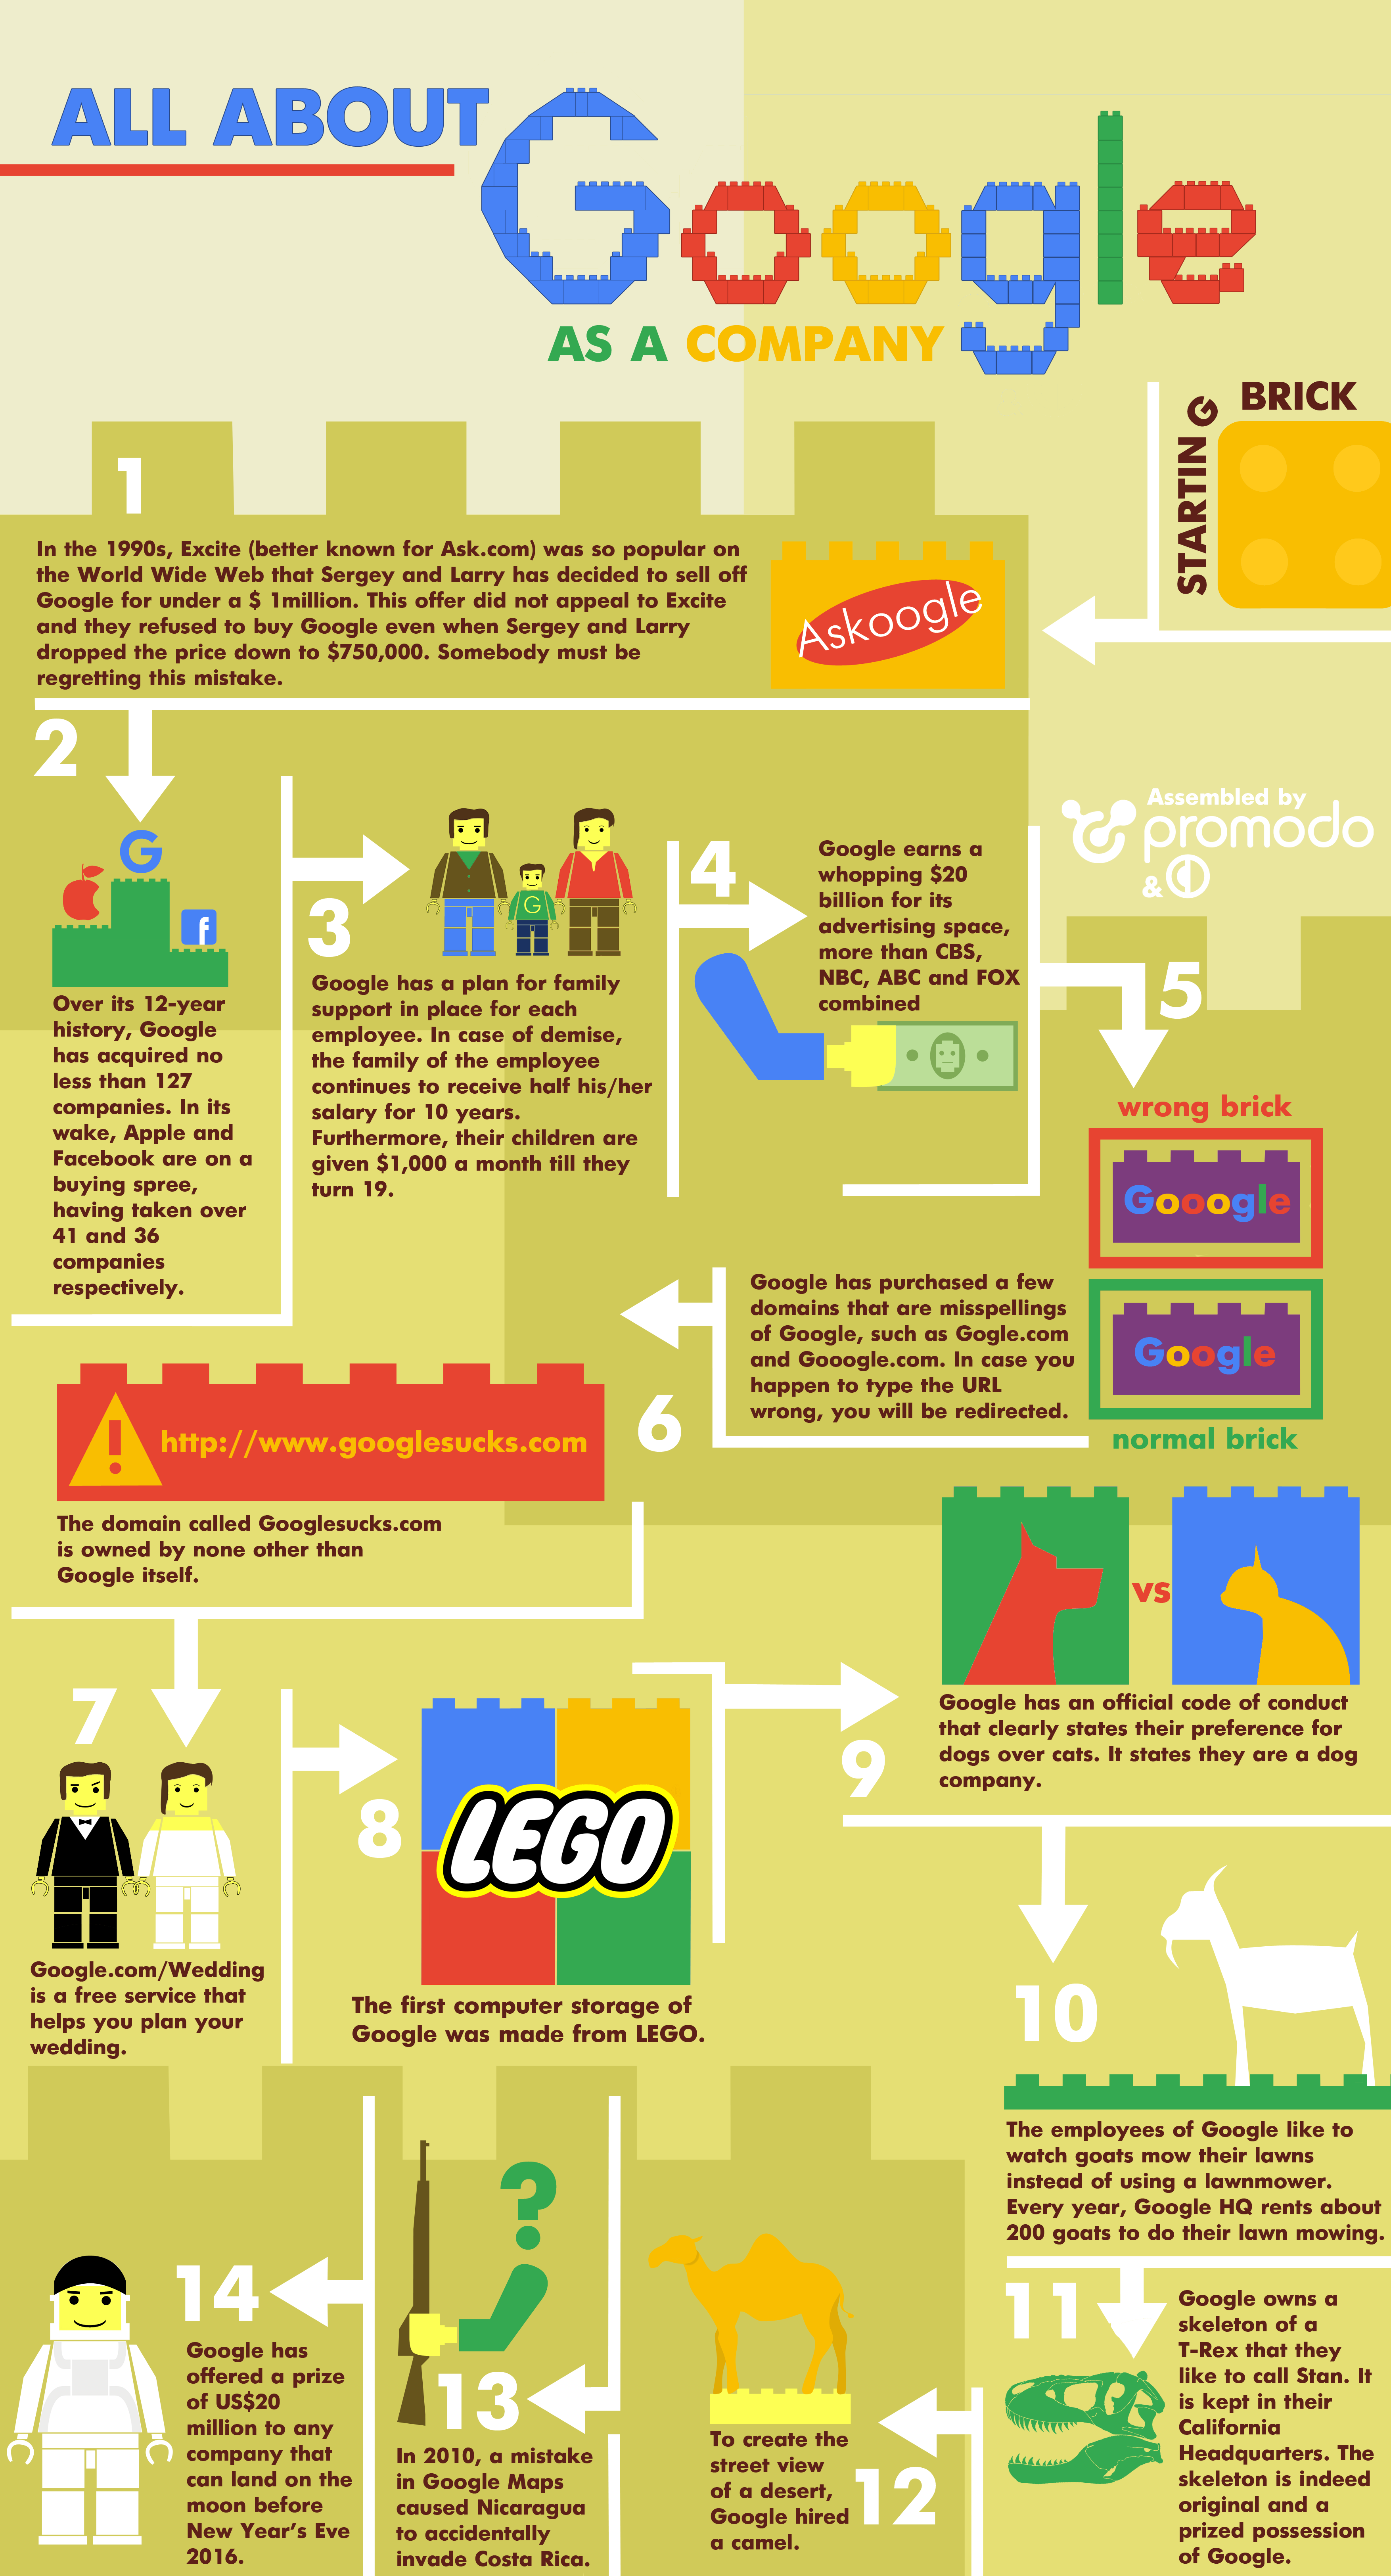 Google Barrel Roll >> [Infographic] 36 Interesting and Fun Facts about Google | Promodo online marketing company - SEM ...